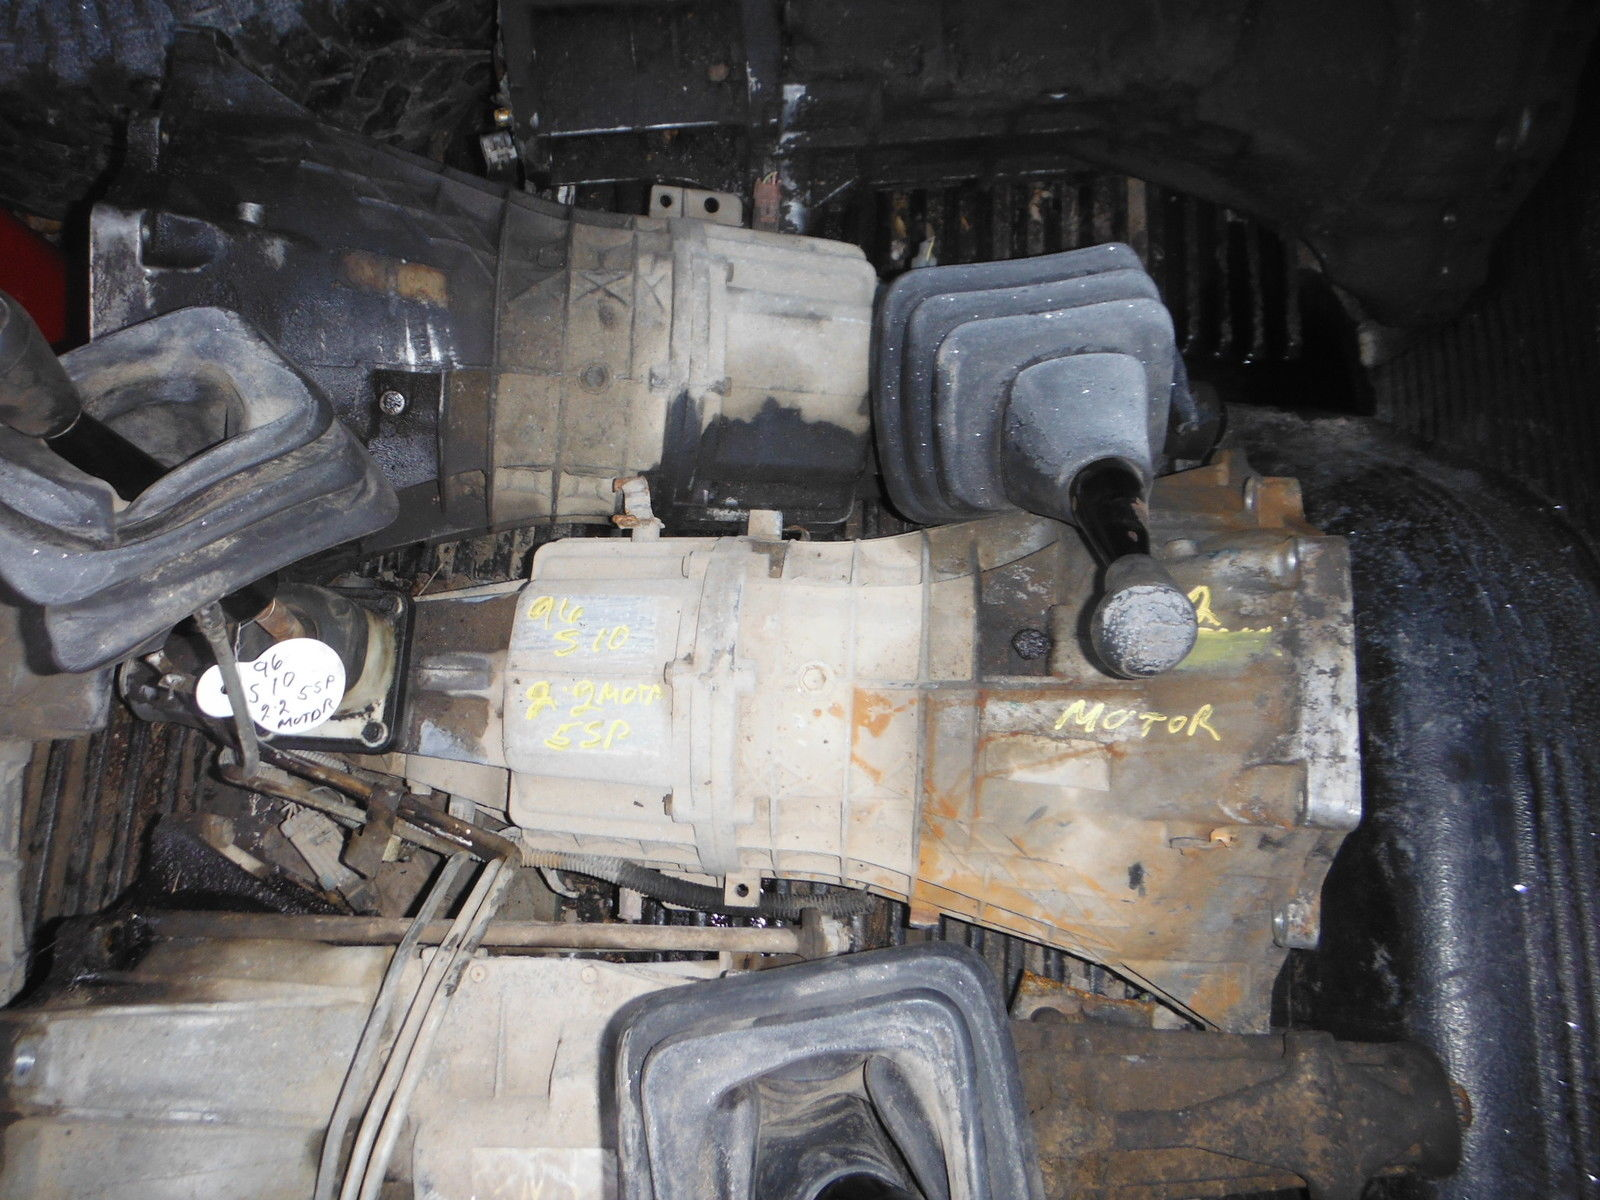 96 99 chevy s10 5 speed manual transmission will ship rh justparts com chevy s10 manual transmission fluid chevy s10 manual transmission fluid type